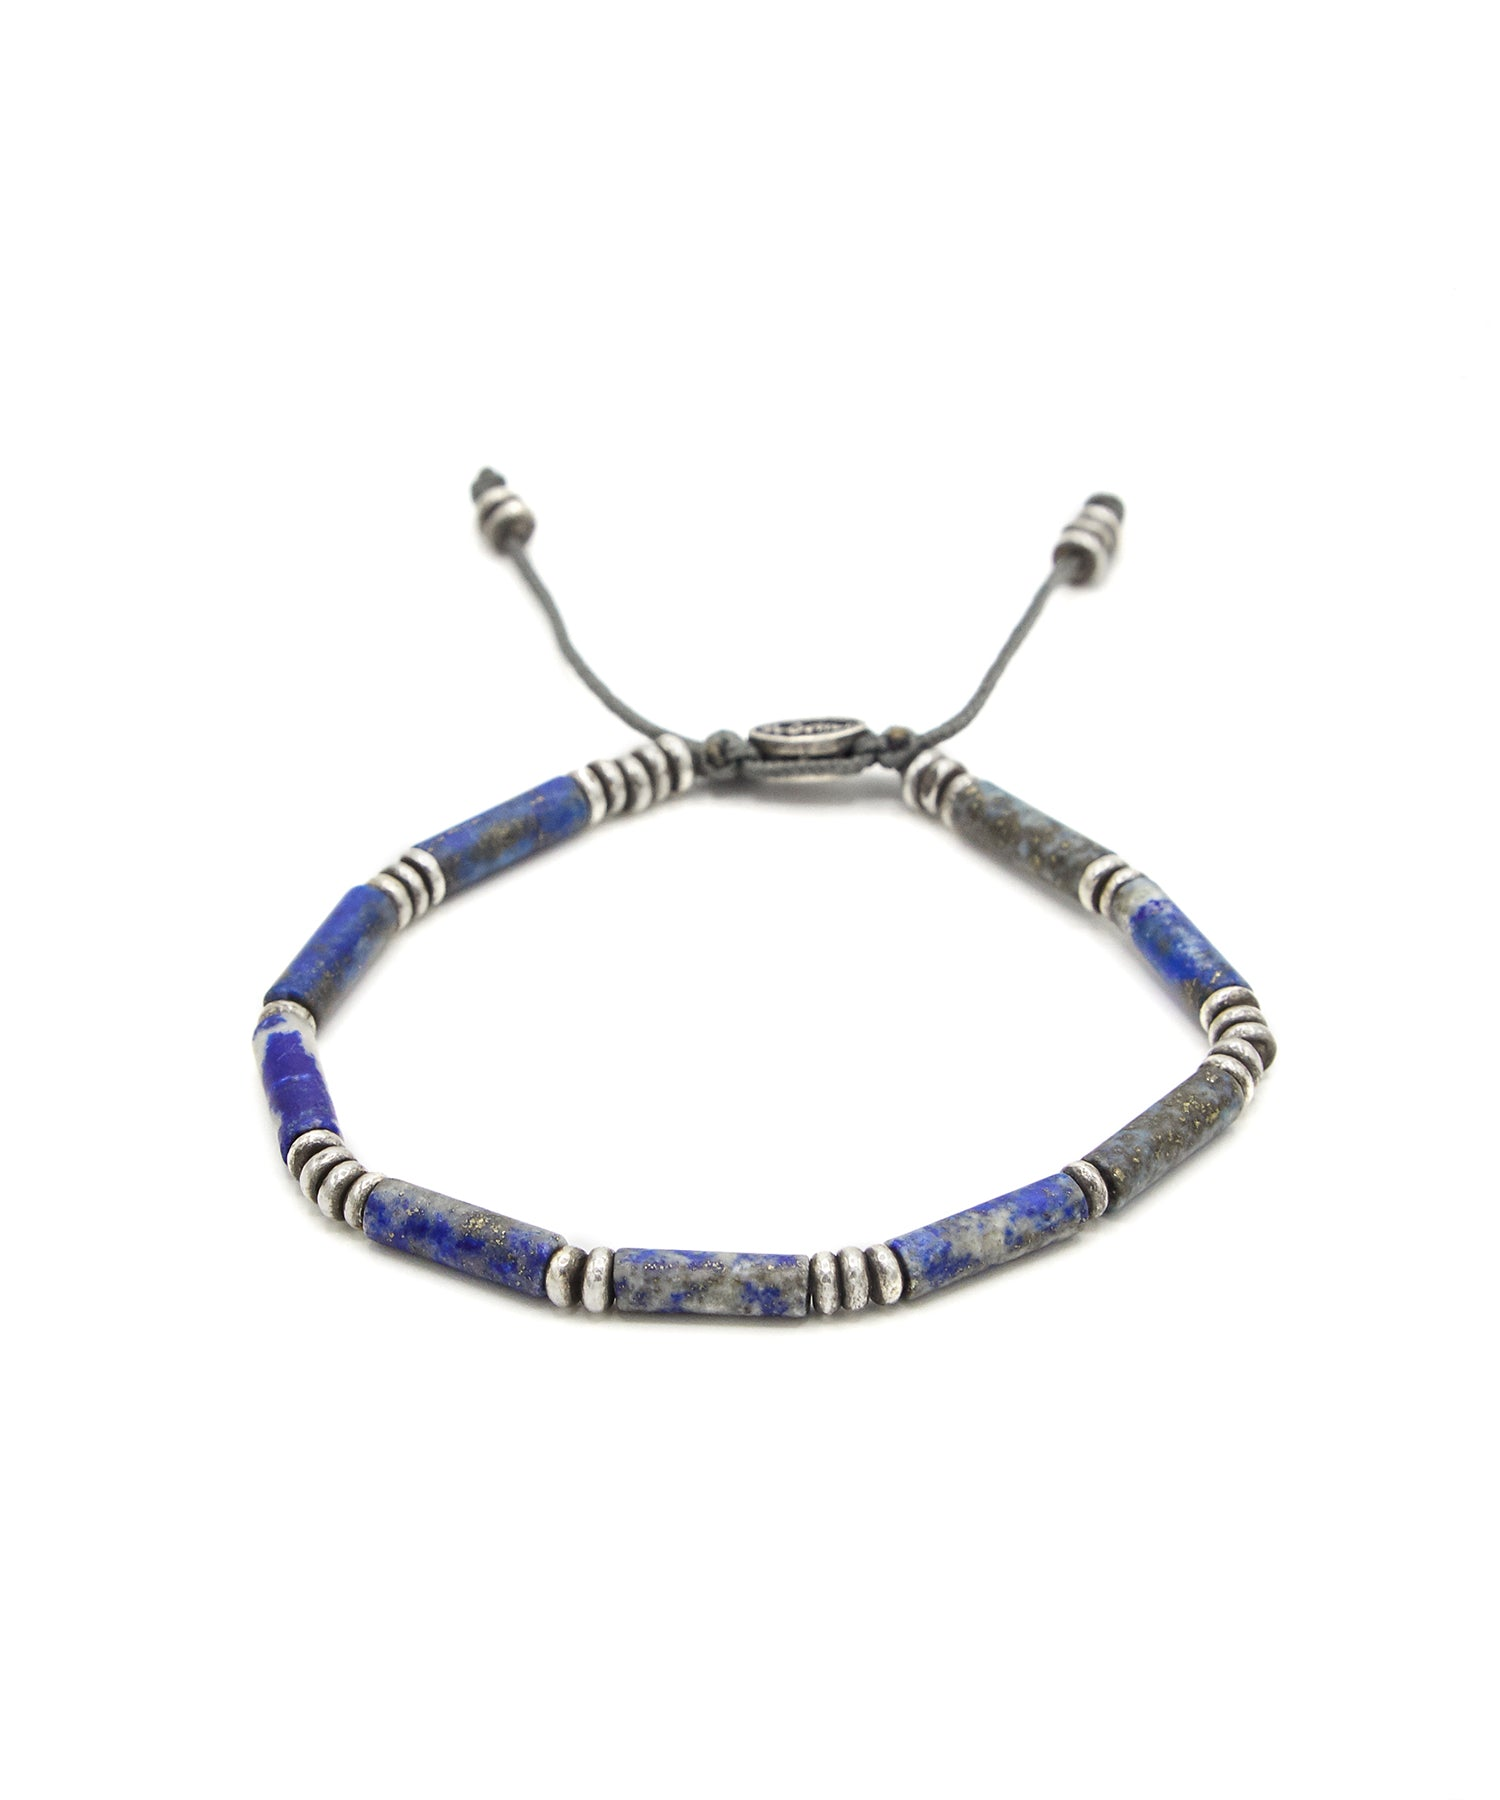 M. Cohen The Zinor Special Tube Cut Bracelet in Blue